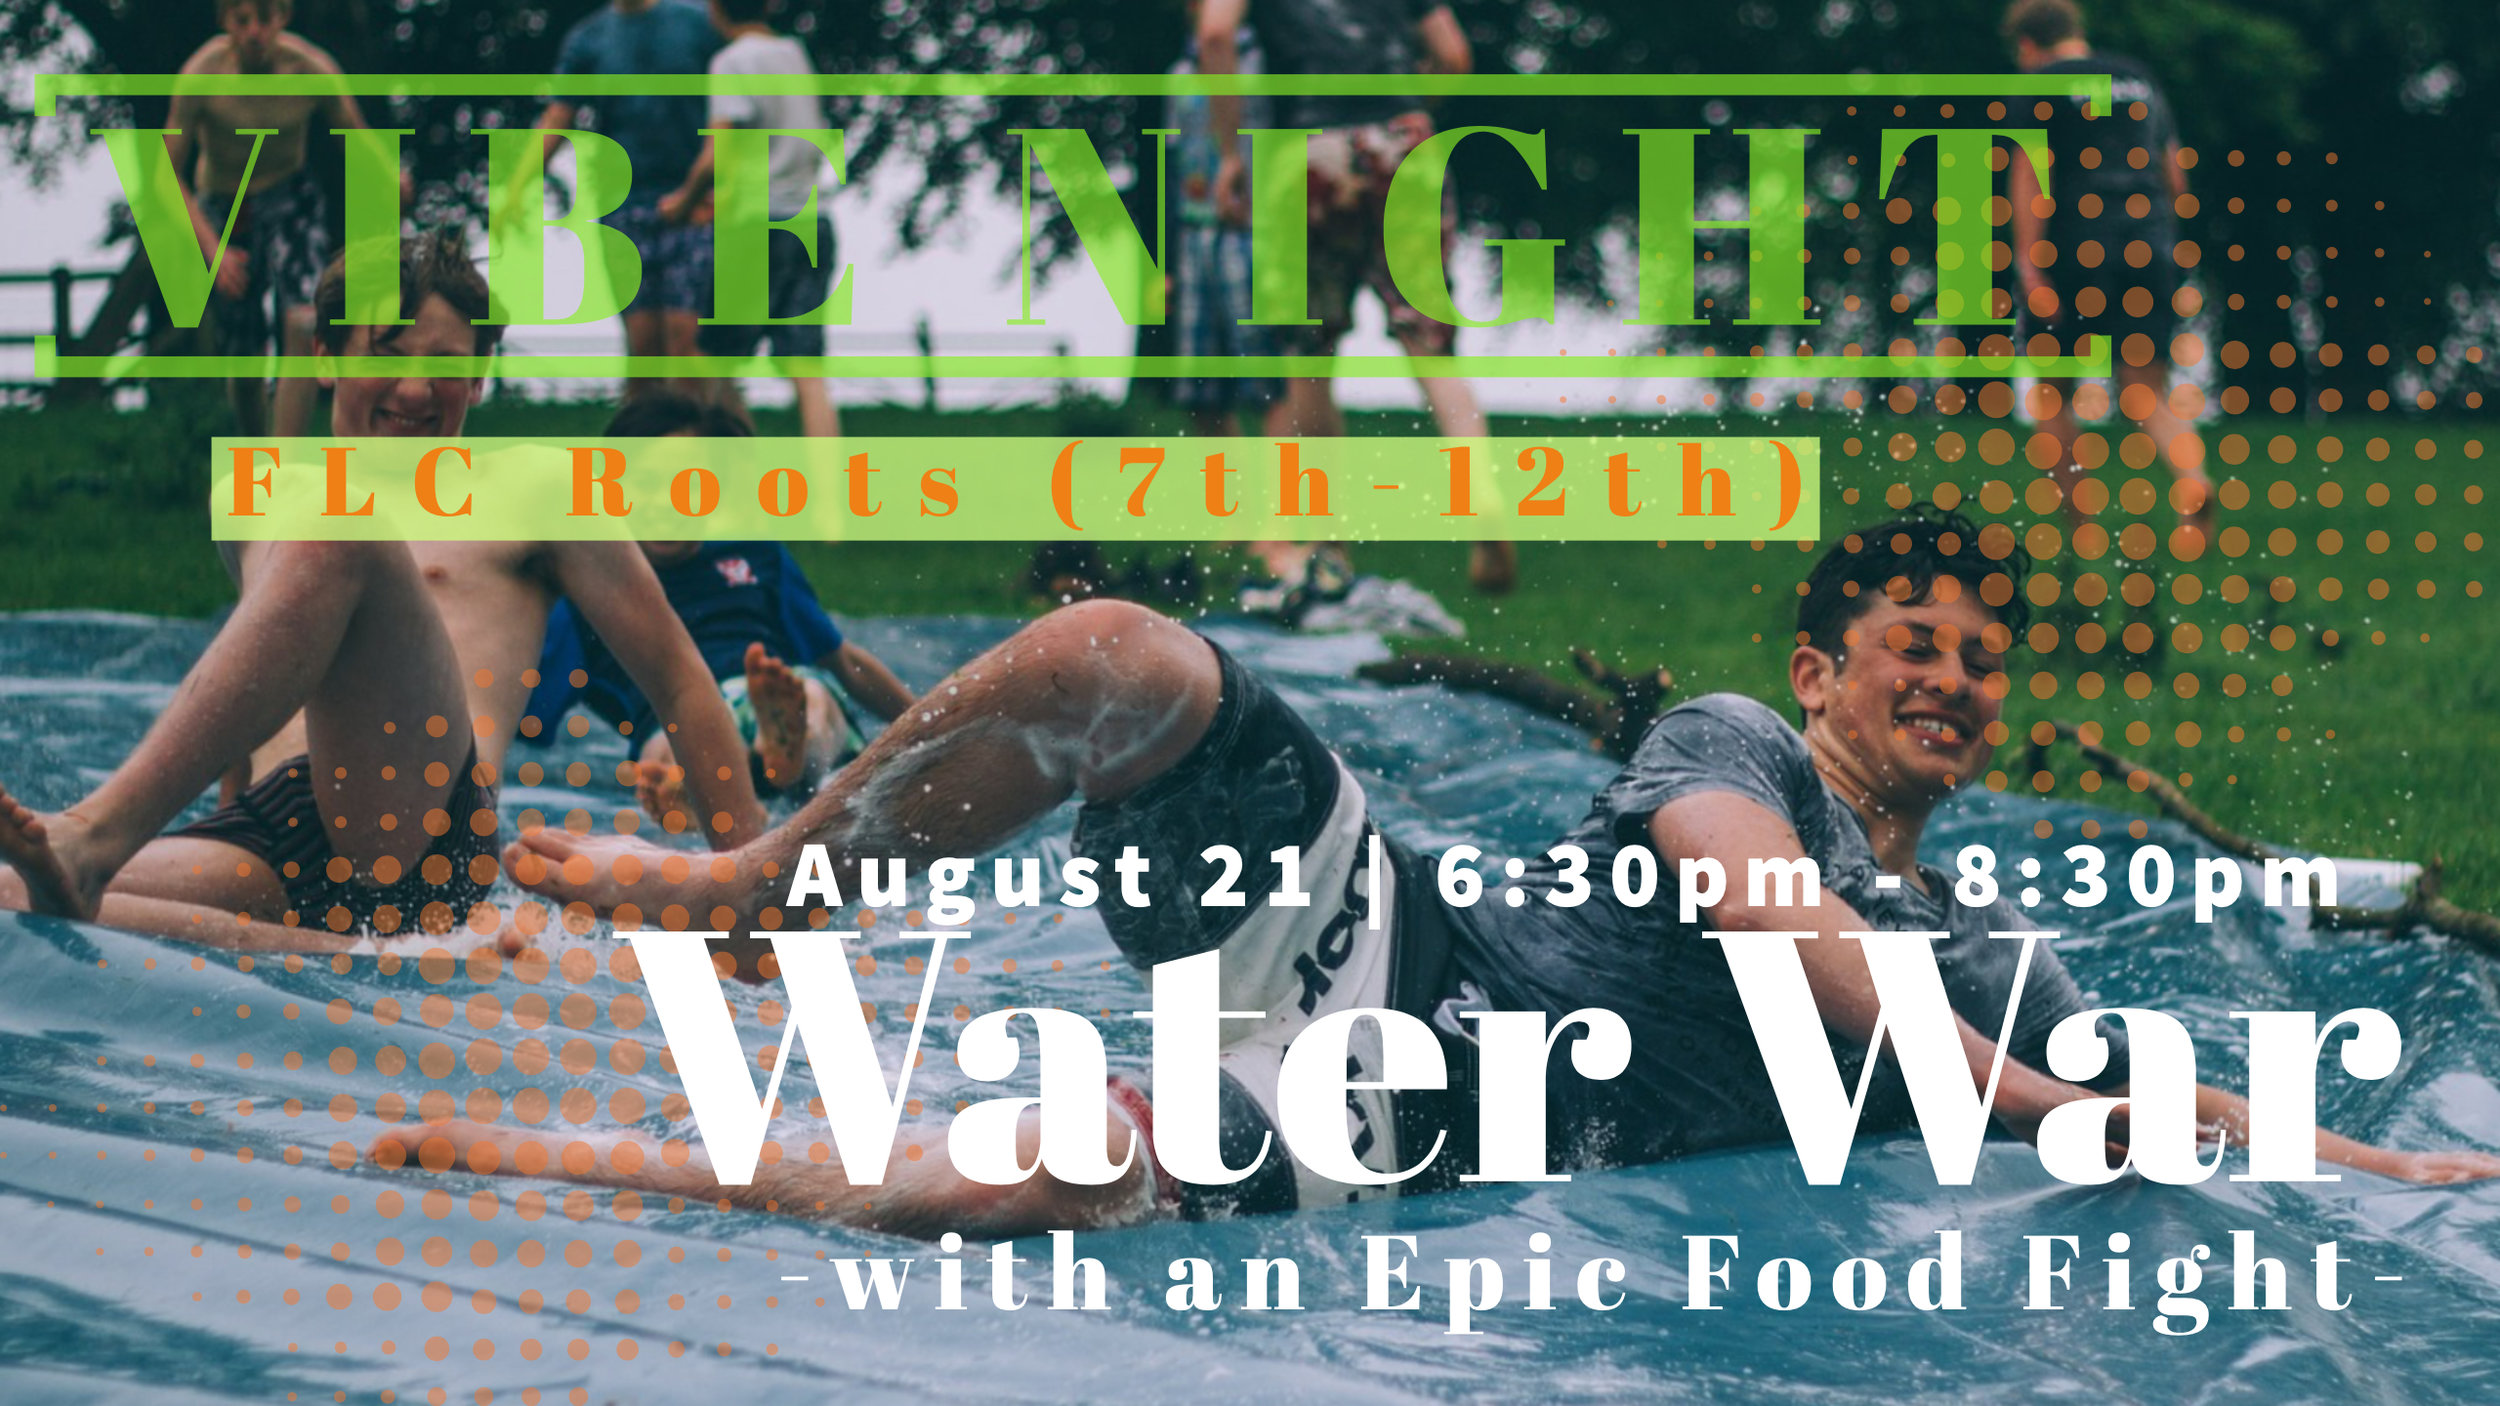 Vibe nights are free teen events created to make connections. School will be back in session, and we are kicking off the year with a water war and food fight. Dress for the mess.